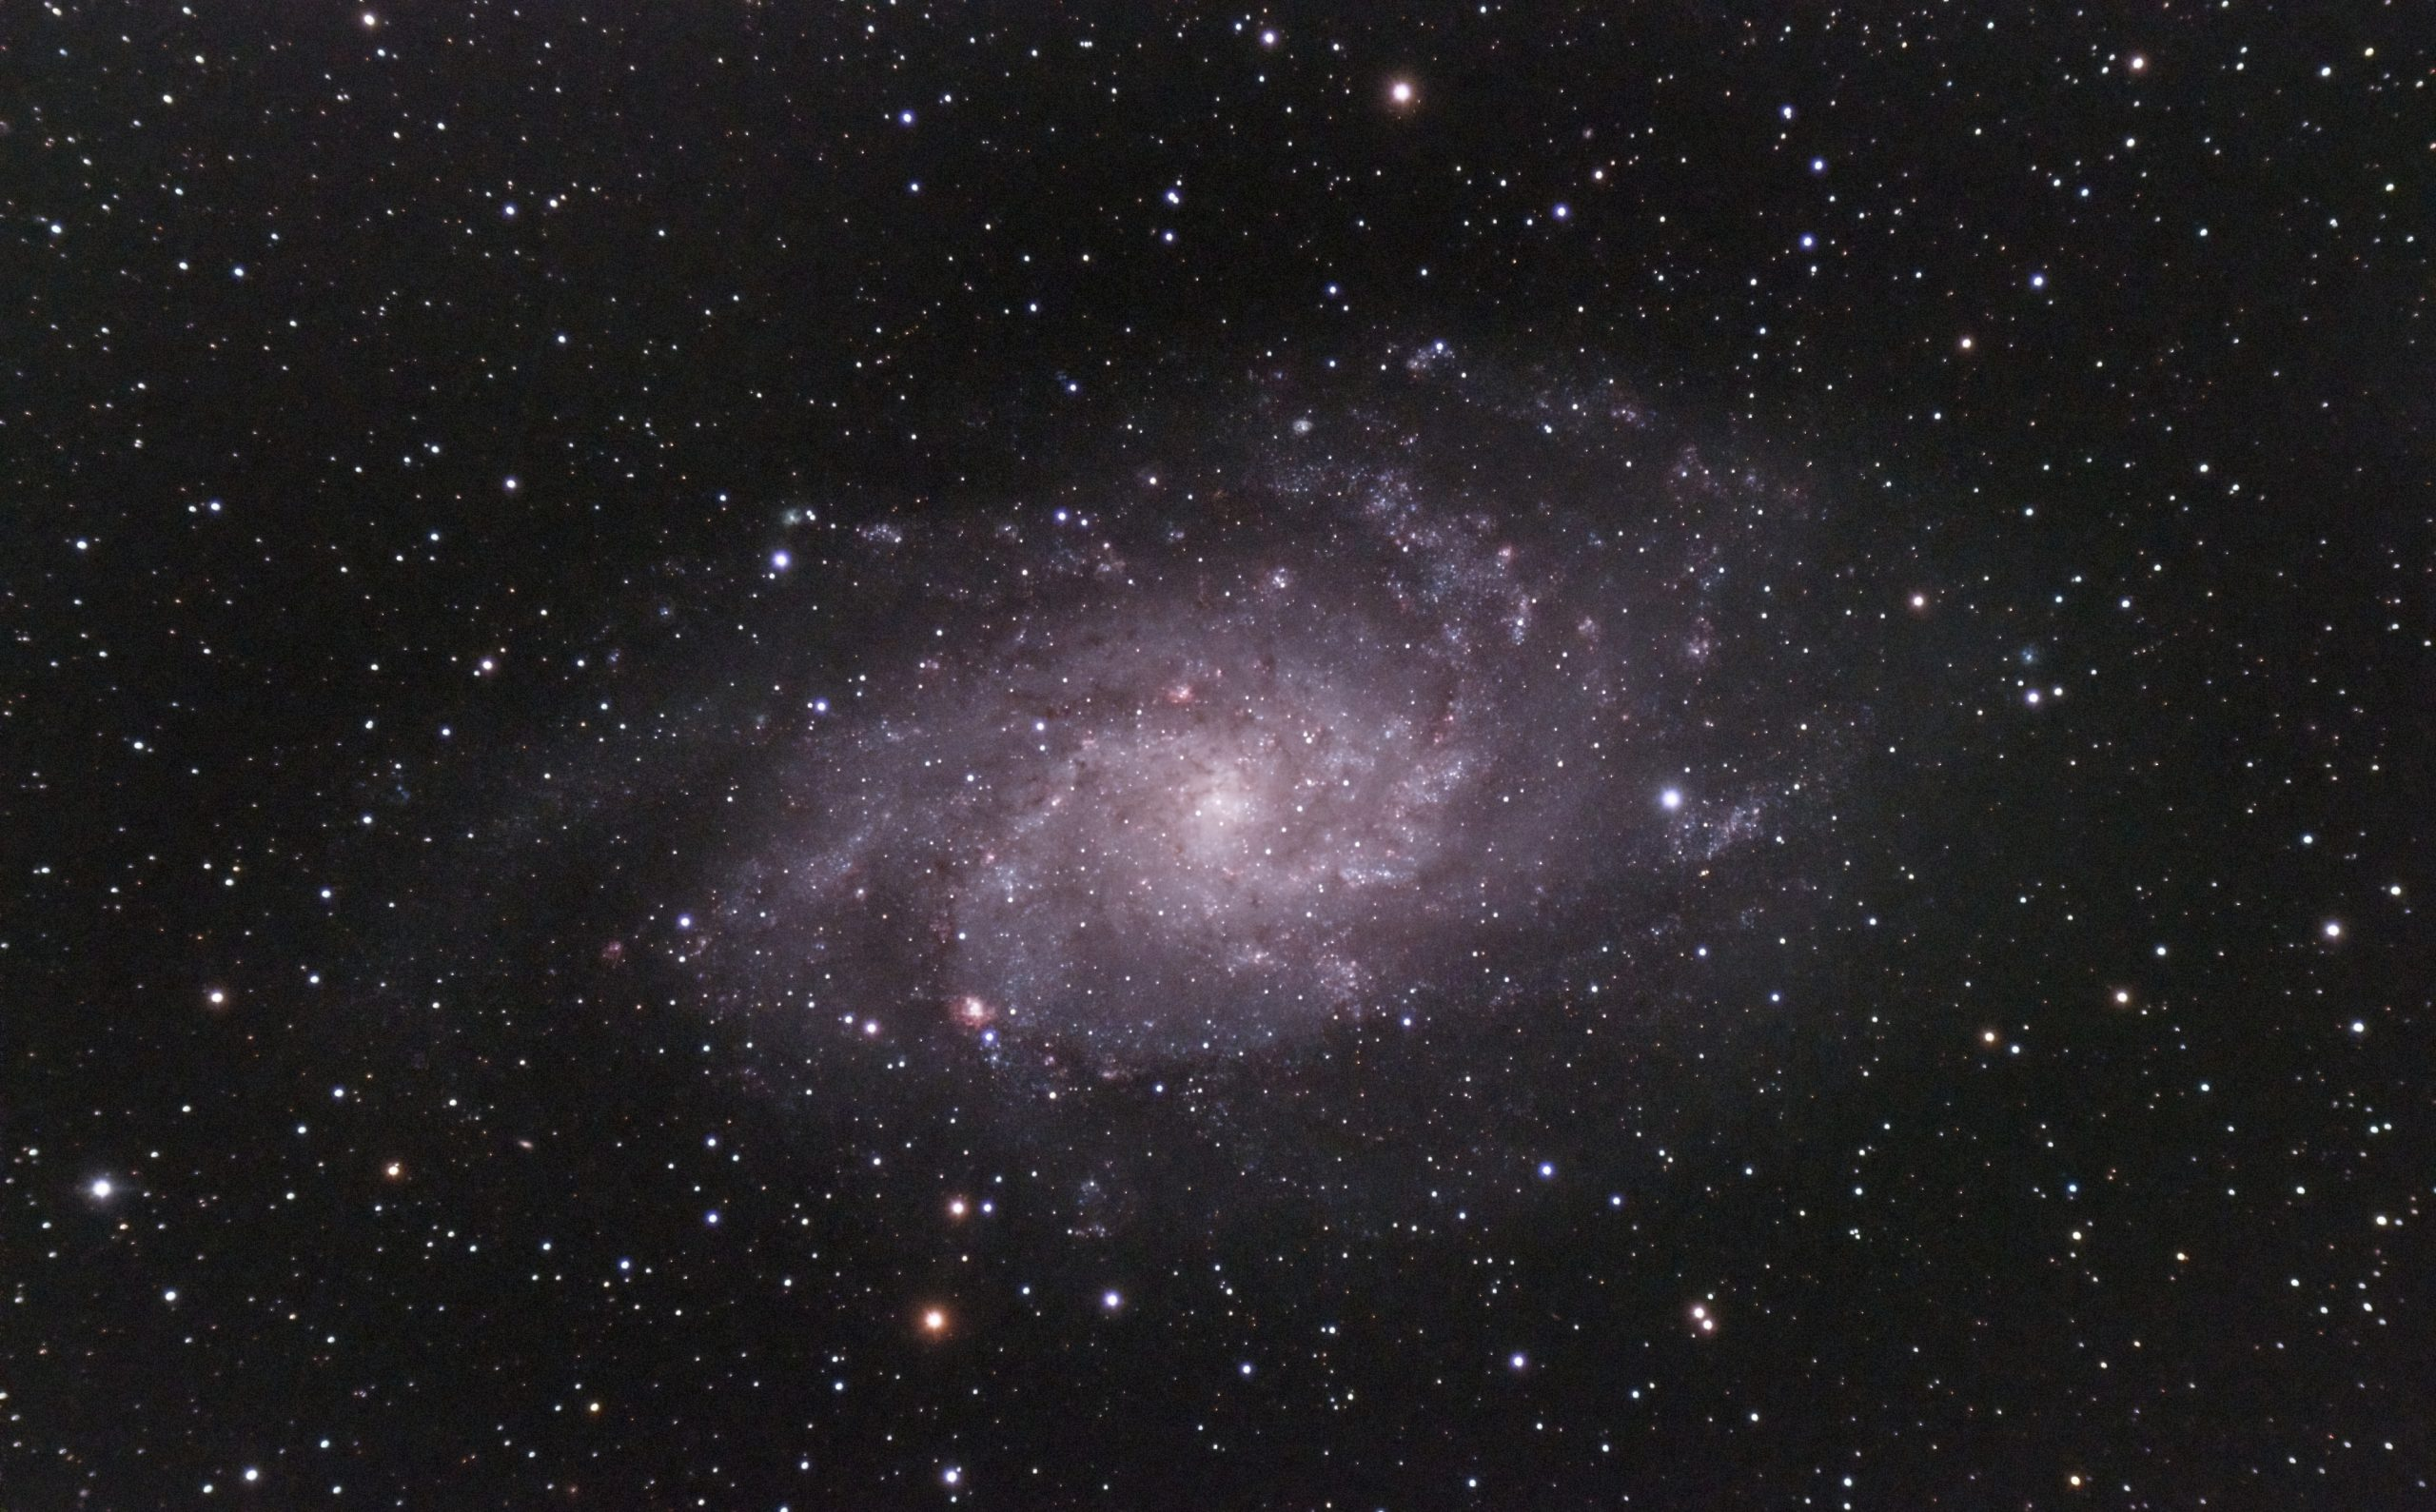 M33 Triangulum Galaxy ( Nigel Goodman) 070921 102ED 294C LProMax 391g 20of x33 (1 of 1)-DeNoiseAI-standard M33 on a very dark, clear but humid night Great deal of trouble with guiding, possibly because of dew. Only 33 stacked out of 76. 150s at 391 gain 20 offset -15C. 105ED, 294C and LProMax filter.